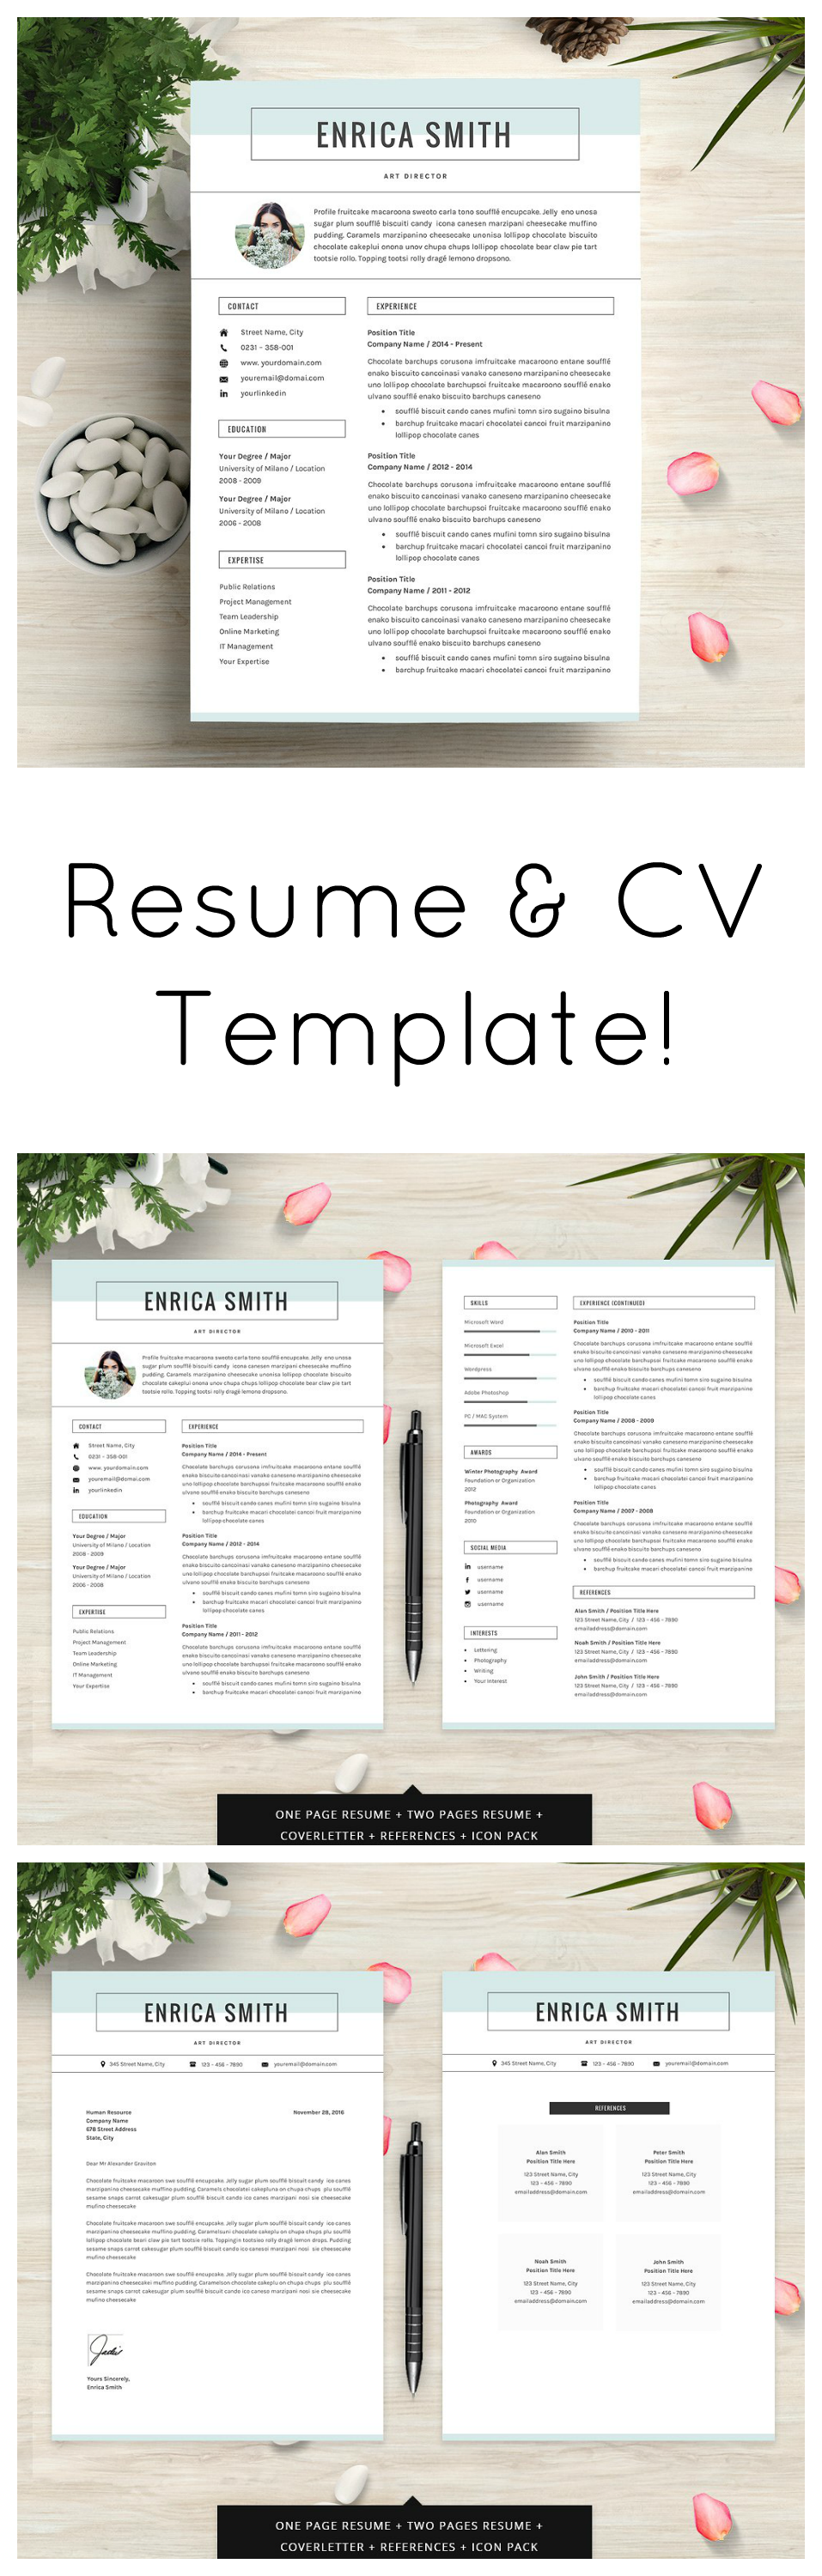 Very Stylish And Impressive Resume Template To Use Love How Clear